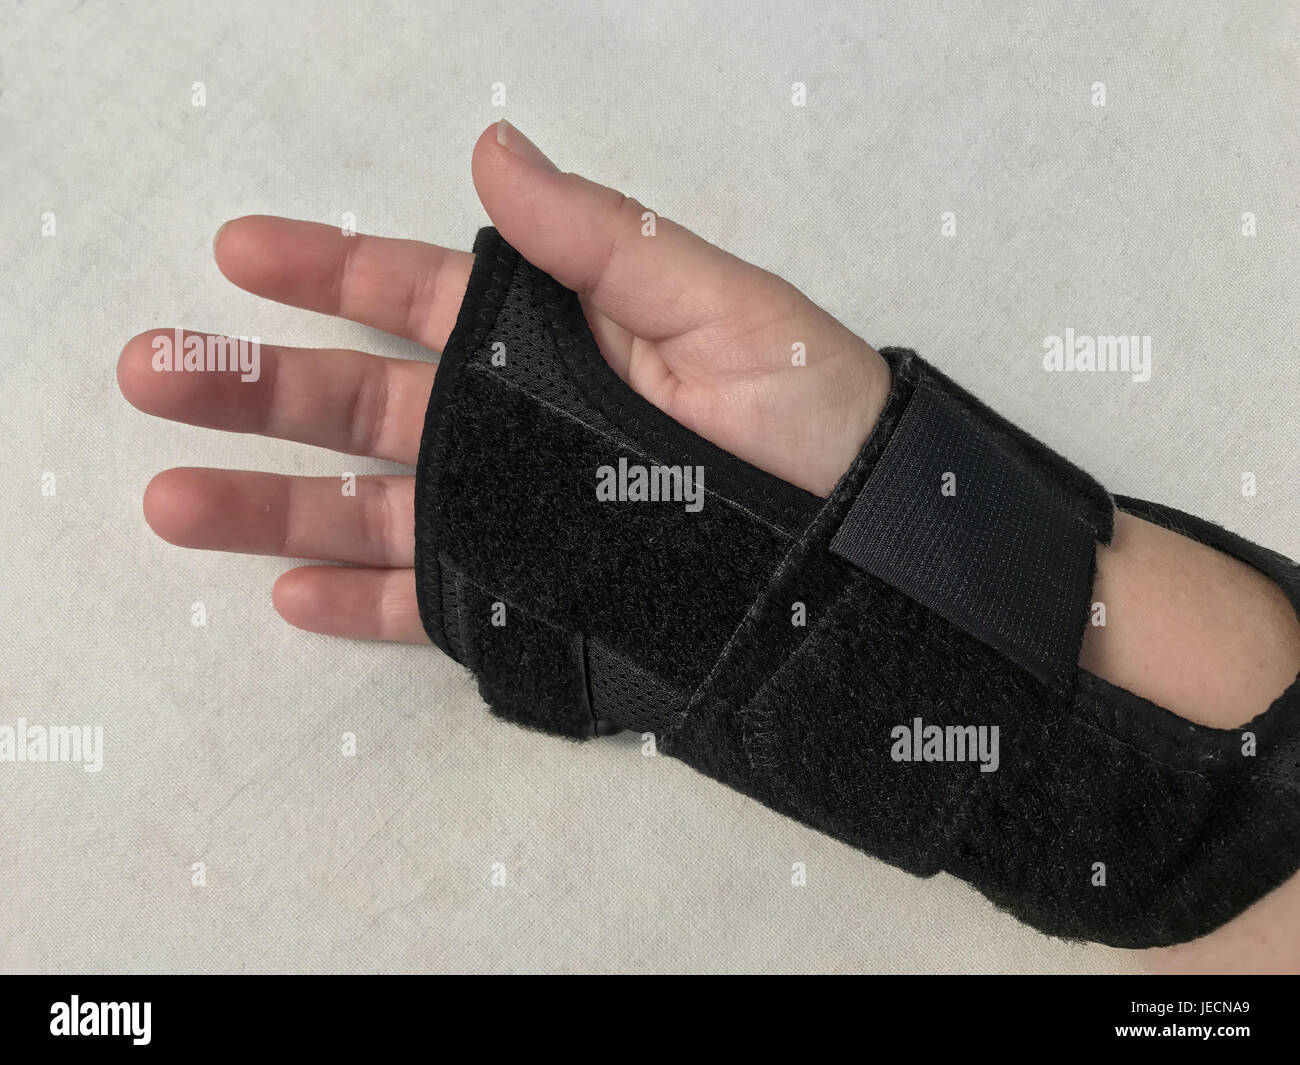 Right hand in hand cuff  inside - Stock Image